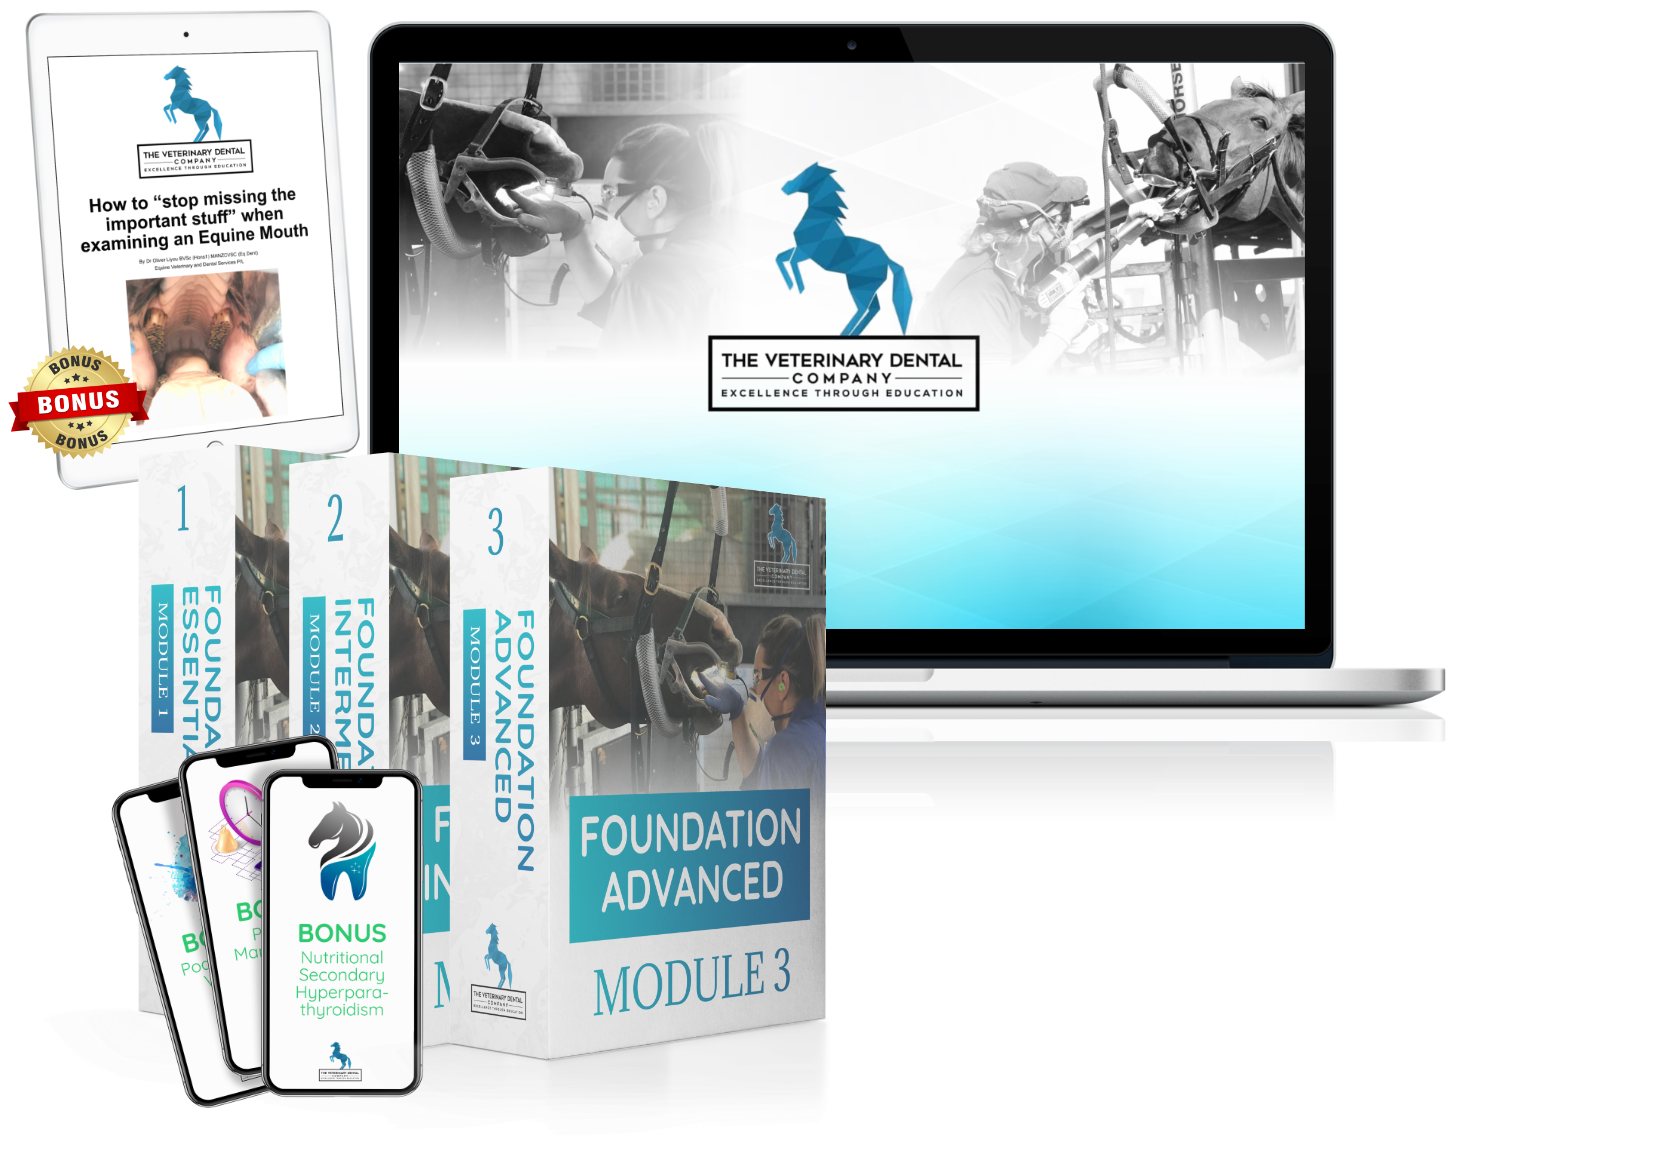 The Veterinary Dental company mockup for online education in equine dentistry for veterinarians